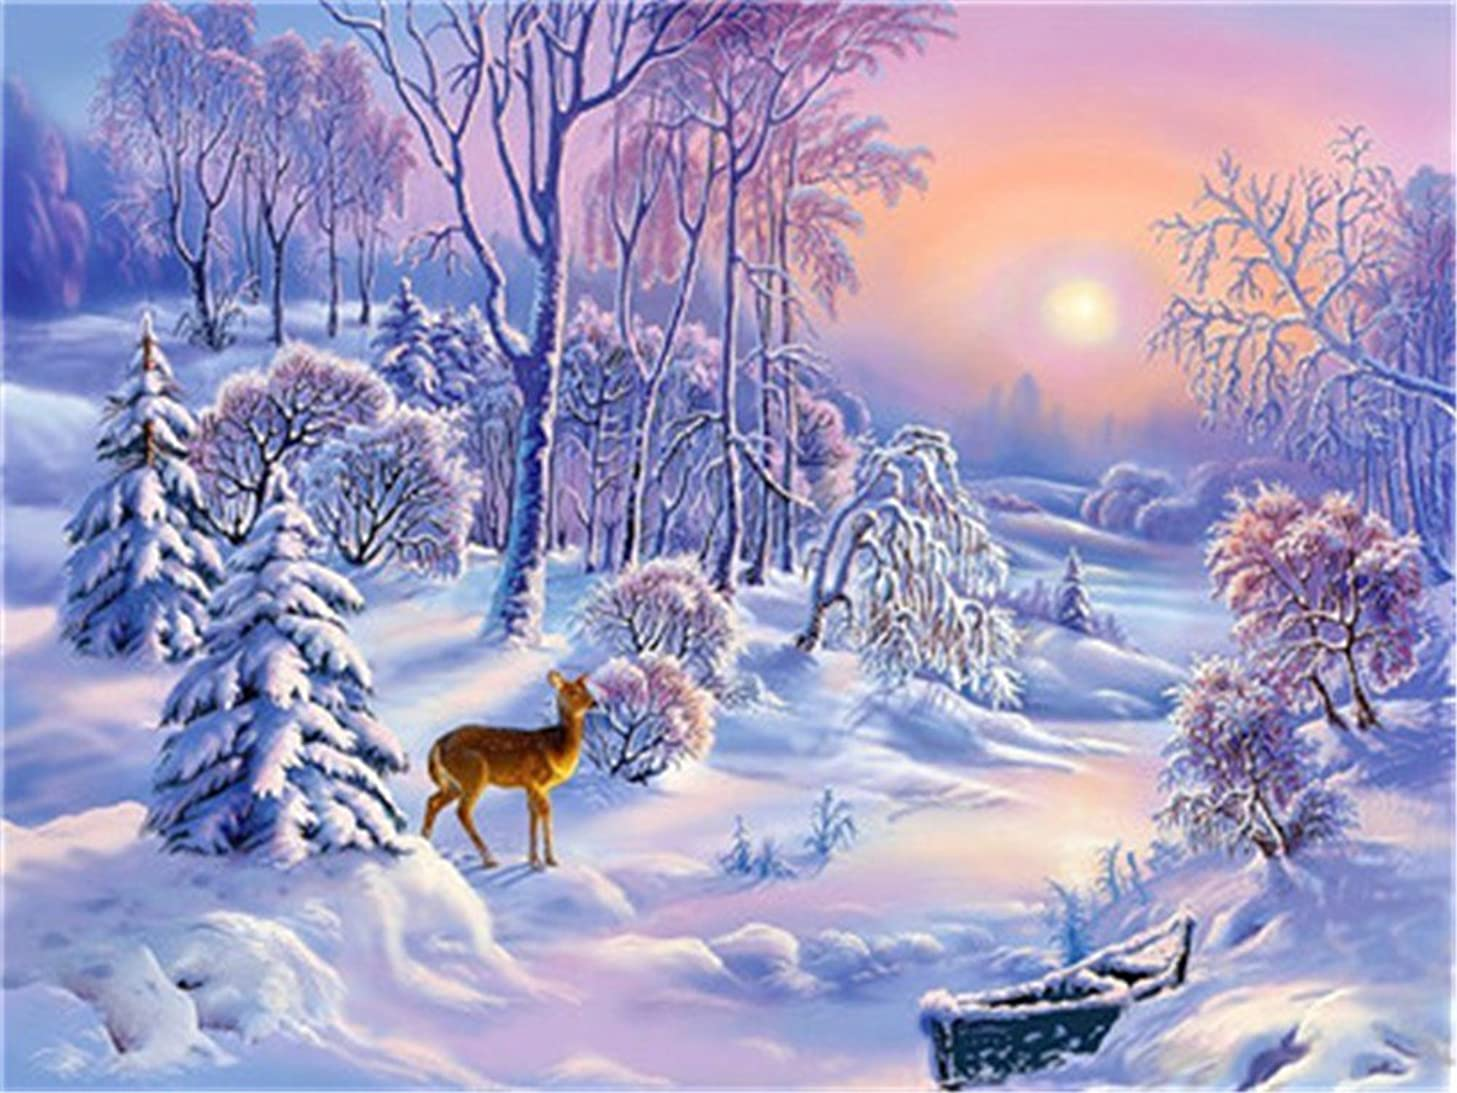 Diy Oil Paint by Number Kit for Adults Beginner 16x20 inch - Little Elk Snow Scene, Drawing with Brushes Christmas Decor Decorations Gifts (Without Frame)